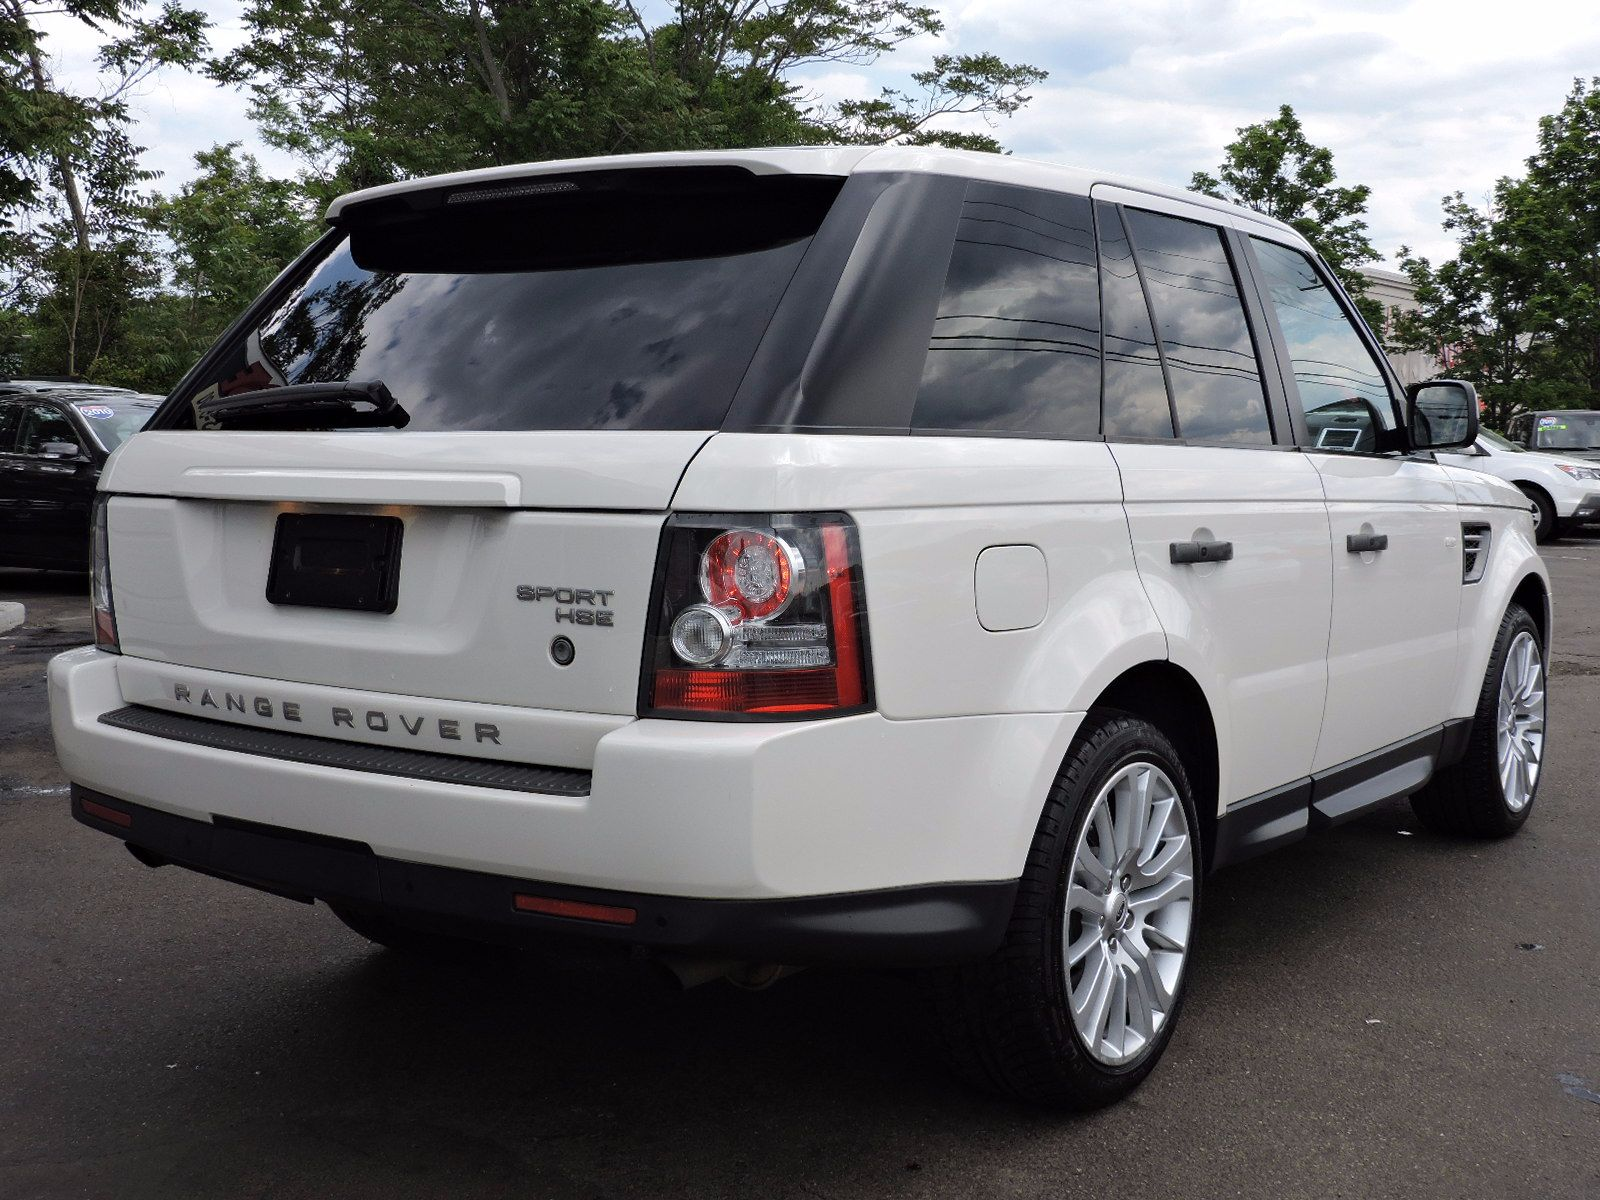 https://saugusautomall.com/uimages/vehicle/2978509/full/2010-Land-Rover-Range-Rover-Sport-HSE-LUX-SALSK2D49AA250532-2309.jpeg